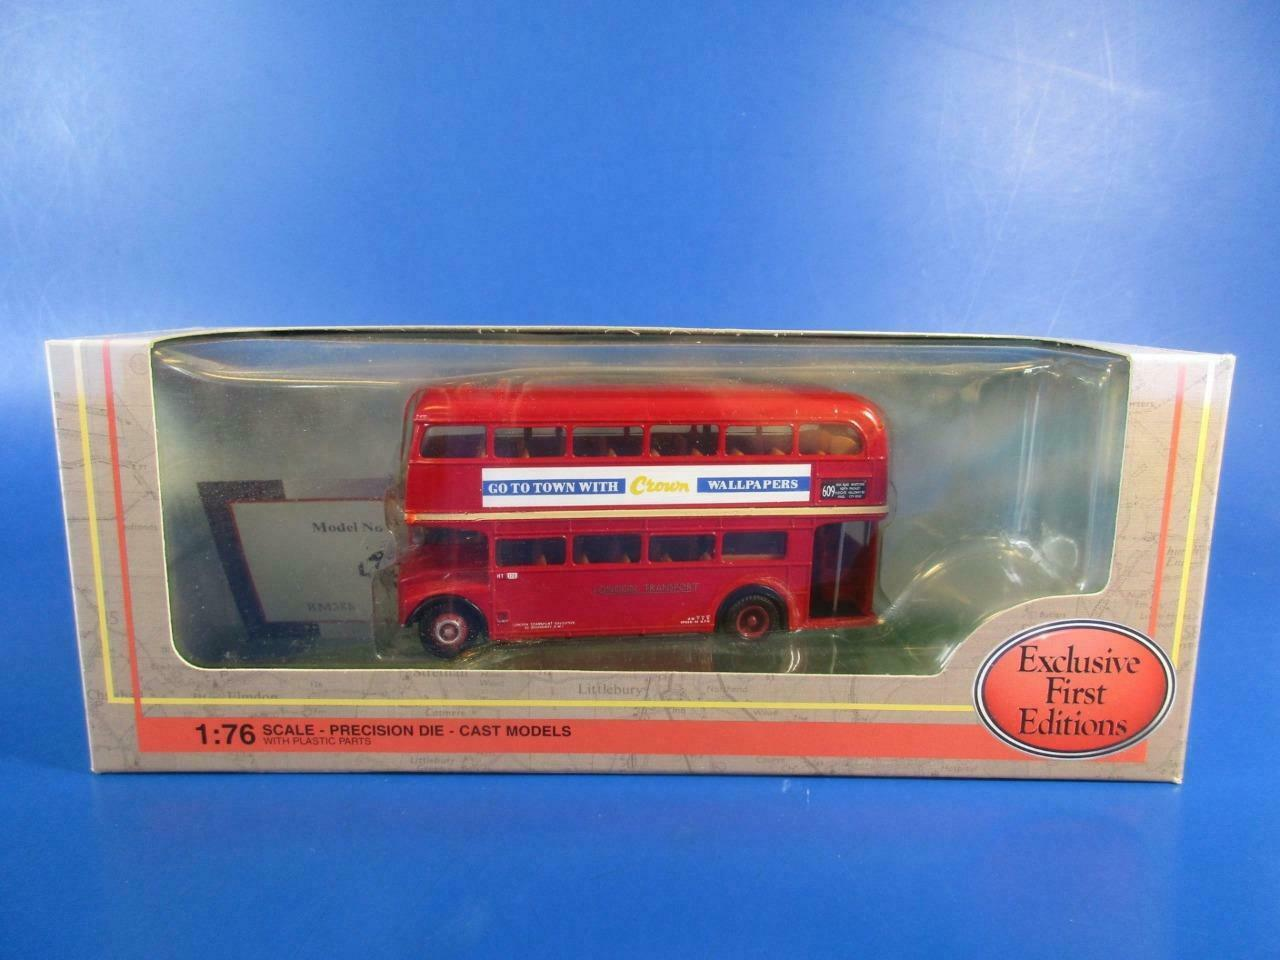 EFE 15635F RM ROUTEMASTER LONDON TRANSPORT L.O.T.S RM588, 1 76, MIB